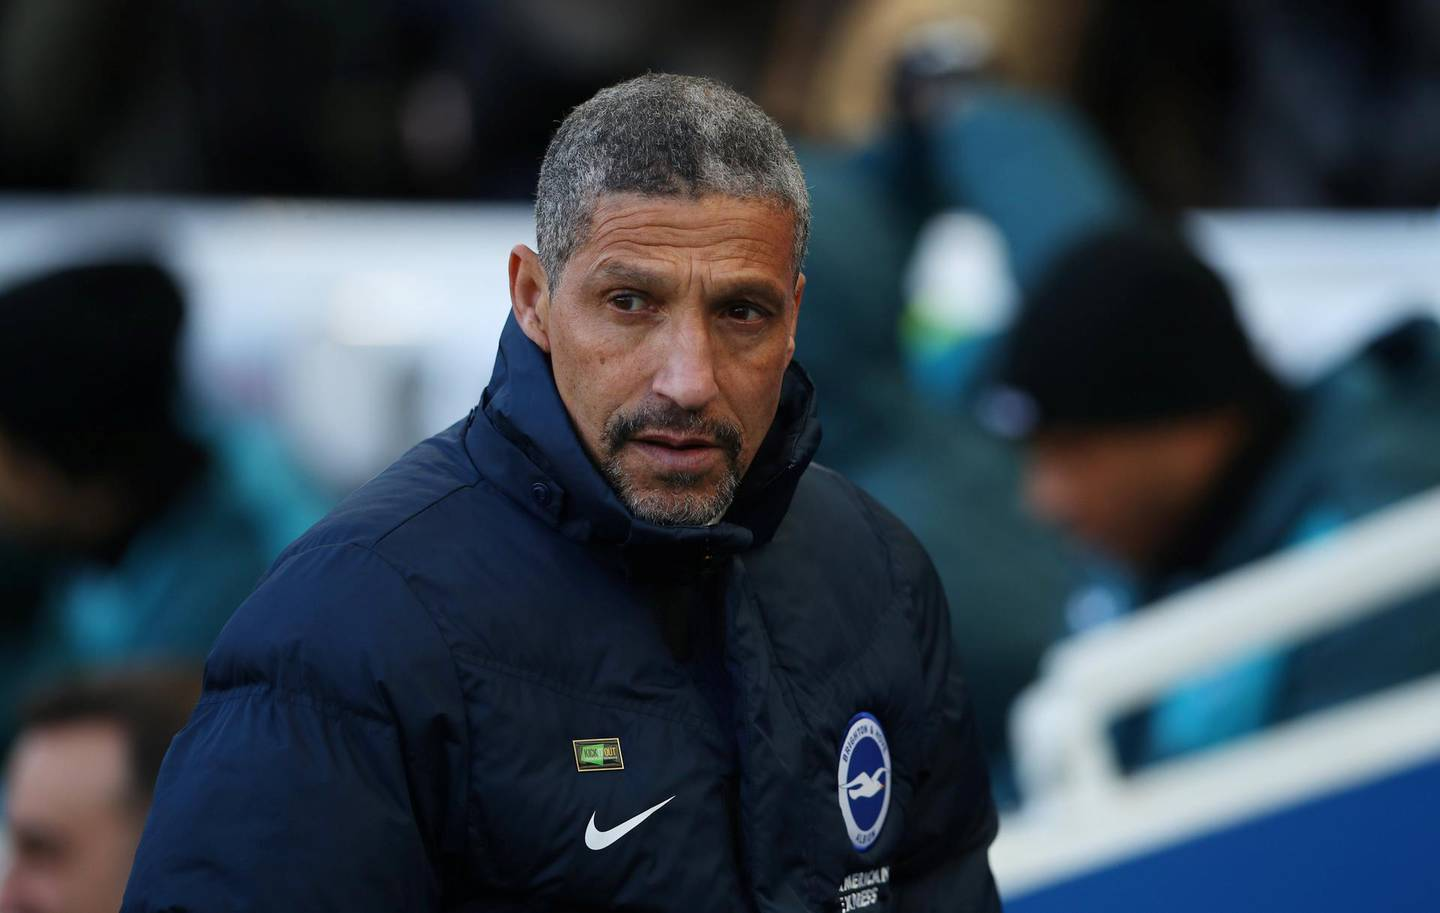 """Soccer Football - Premier League - Brighton & Hove Albion vs Swansea City - The American Express Community Stadium, Brighton, Britain - February 24, 2018   Brighton manager Chris Hughton before the match   REUTERS/Hannah McKay    EDITORIAL USE ONLY. No use with unauthorized audio, video, data, fixture lists, club/league logos or """"live"""" services. Online in-match use limited to 75 images, no video emulation. No use in betting, games or single club/league/player publications.  Please contact your account representative for further details."""